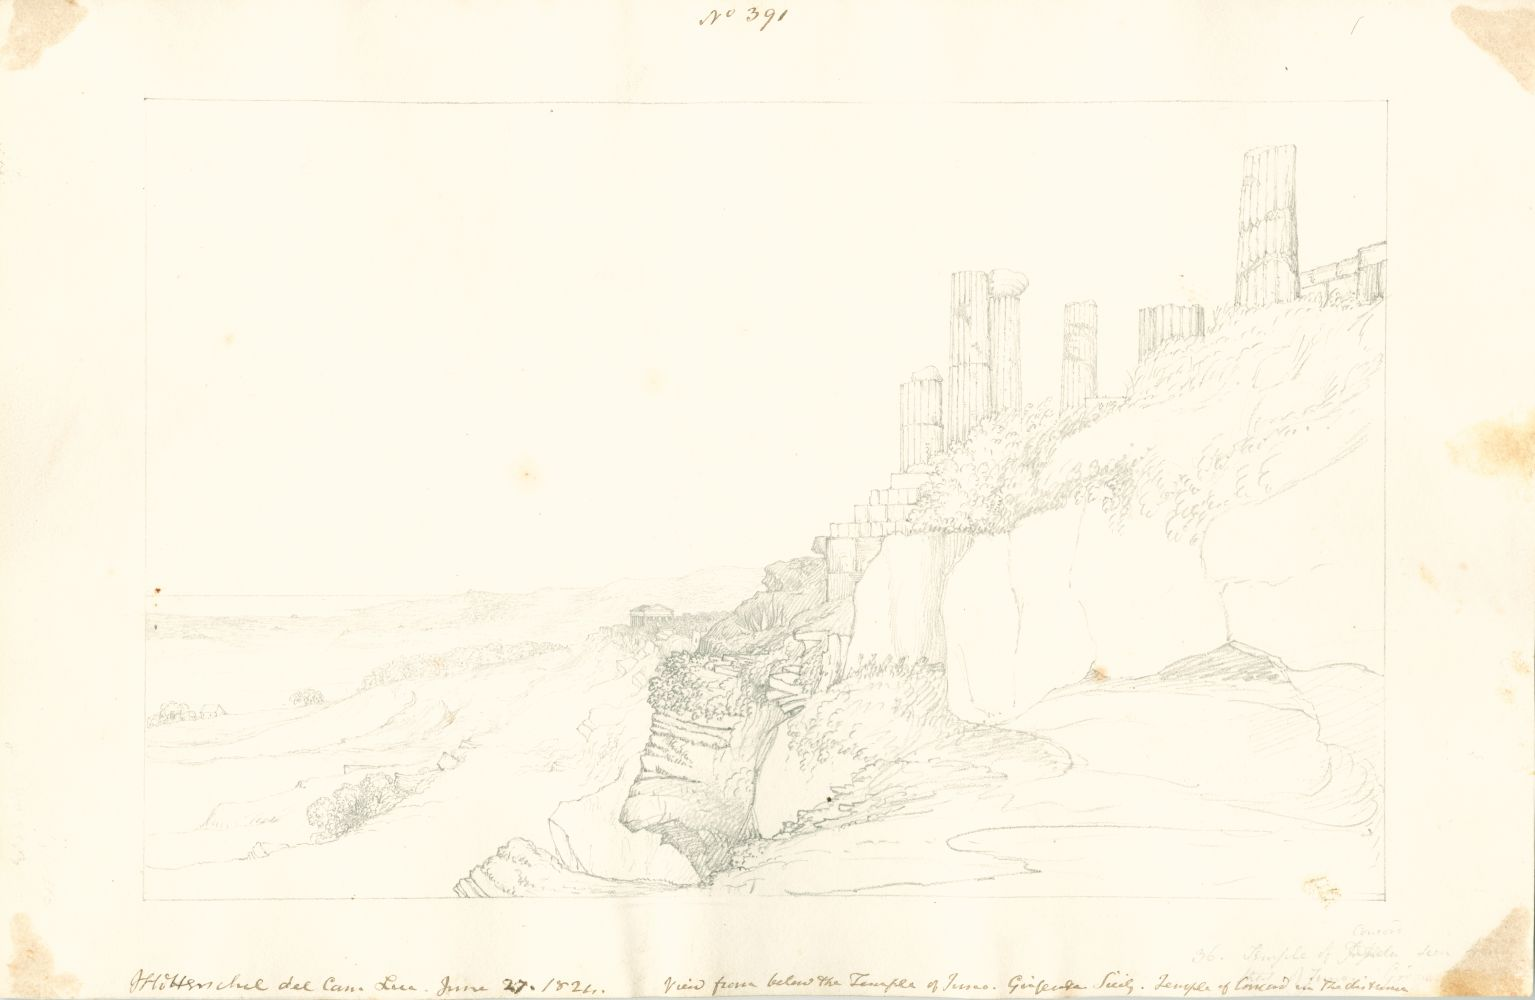 """Sir John Frederick William HERSCHEL (English, 1792-1872) """"No 391 View from below the Temple of Juno, Girgenti Sicily. Temple of Concord in the distance"""", 27 June 1824 Camera lucida drawing, pencil on paper 20.0 x 31.0 cm on 25.1 x 38.4 cm paper Numbered, signed, dated and titled """"No 391 / JFW Herschel del Cam Luc. June 27, 1824. / View from below the Temple of Juno. Girgenti Sicily. Temple of Concord in the distance"""" in ink in border, and """"Concord / 36. Temple of [crossed out] seen from / [illegible] of Juno Girgenti"""" in pencil."""